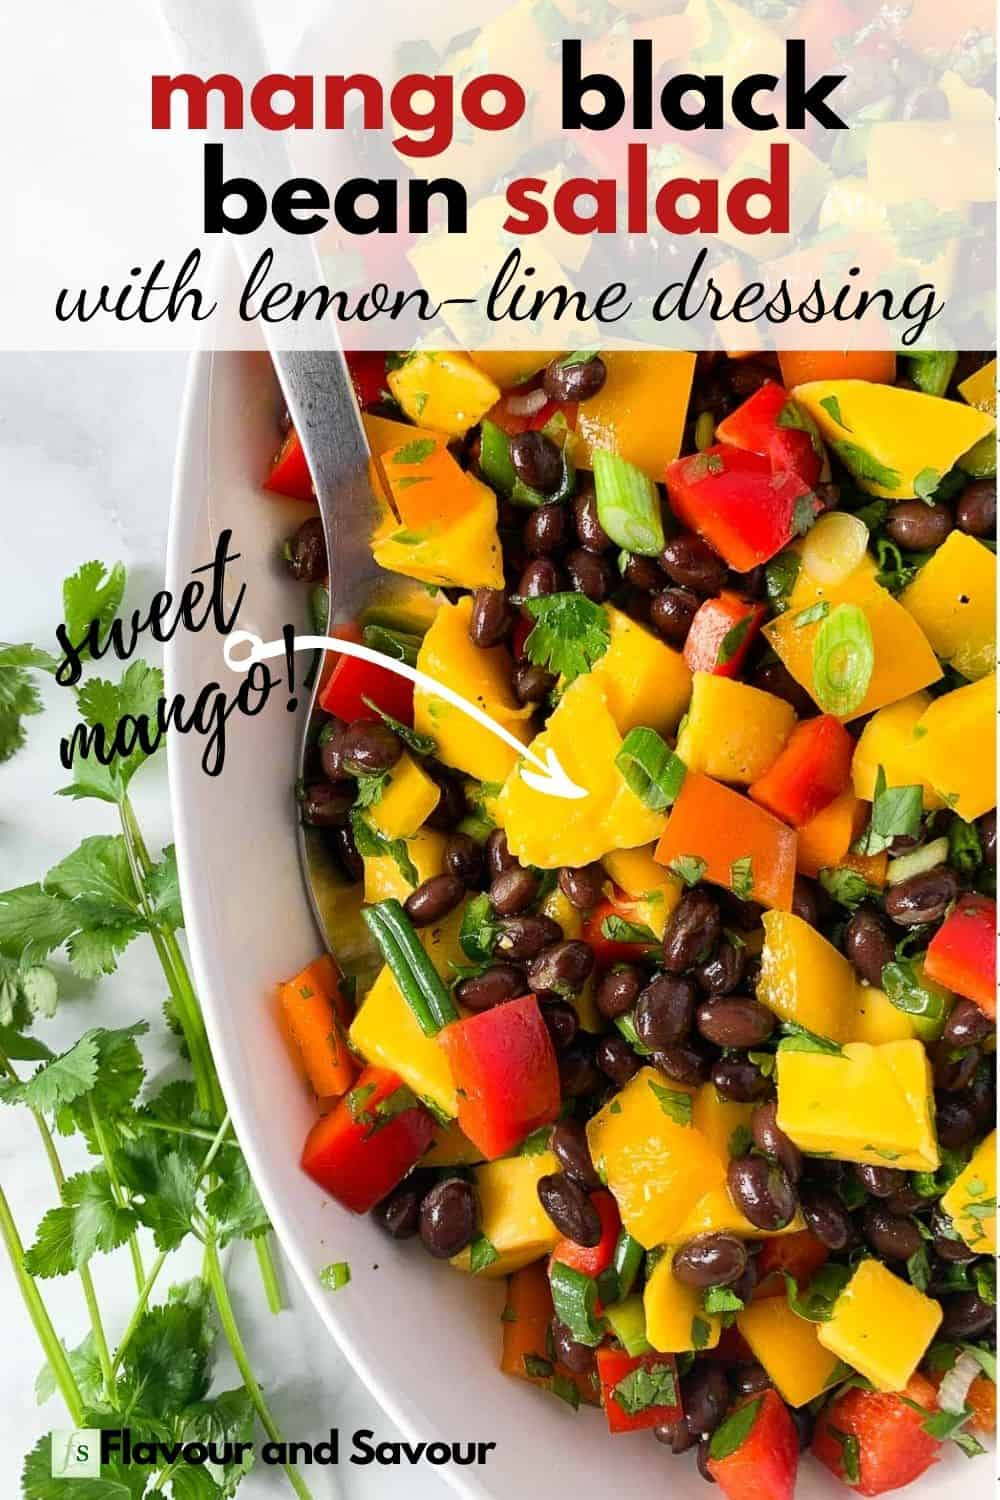 Text and image for mango black bean salad with lemon lime dressing